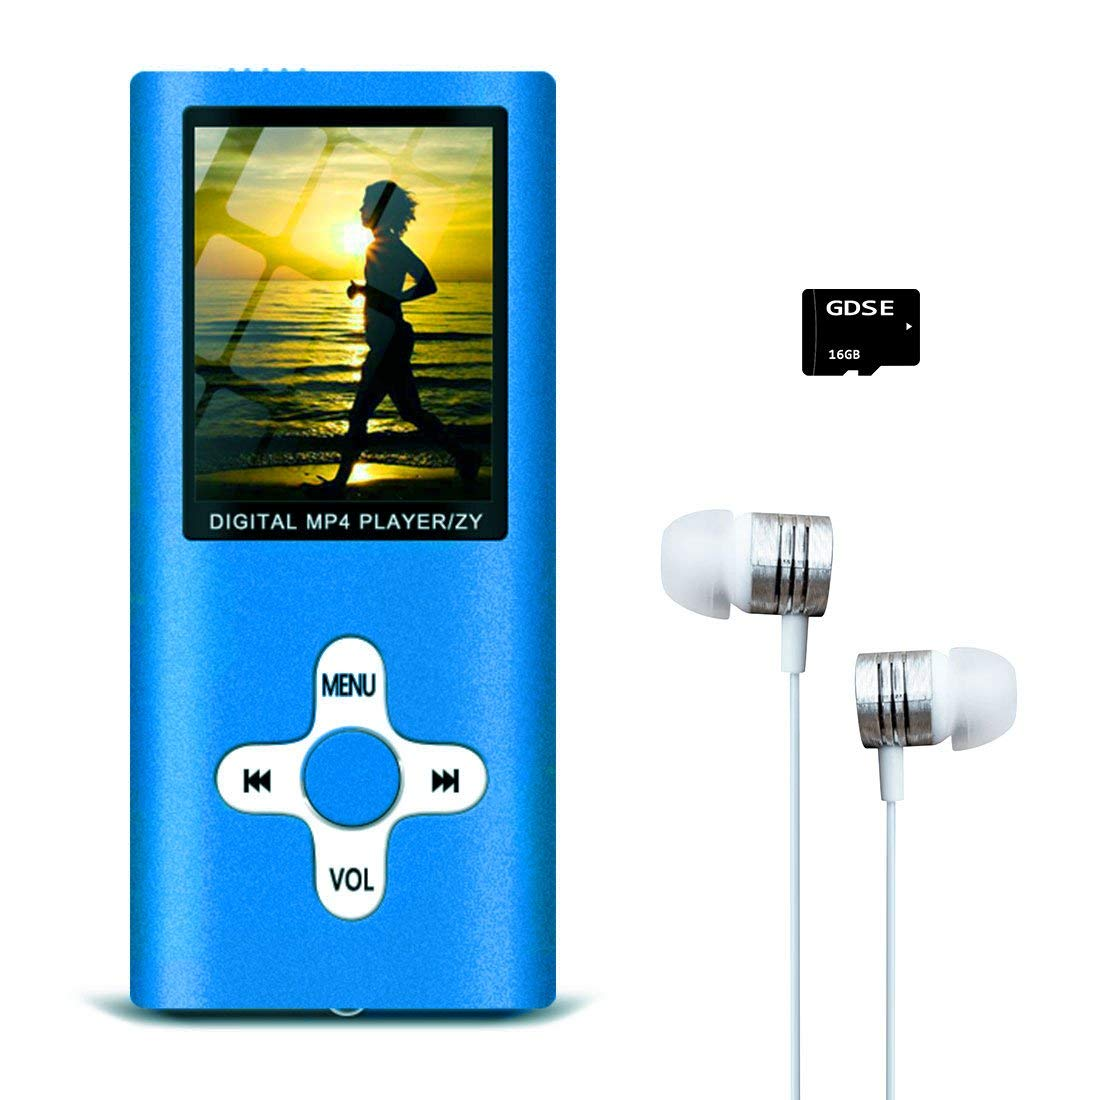 MP3/MP4 Music Player with FM Radio/Video Player/Voice Recorder/E-Book Reader, Compact and Portable Hey-Elecs MP3/MP4 Player, Including a 16GB Micro SD Card, Ultra Slim 1.8in LCD Screen - (Blue)